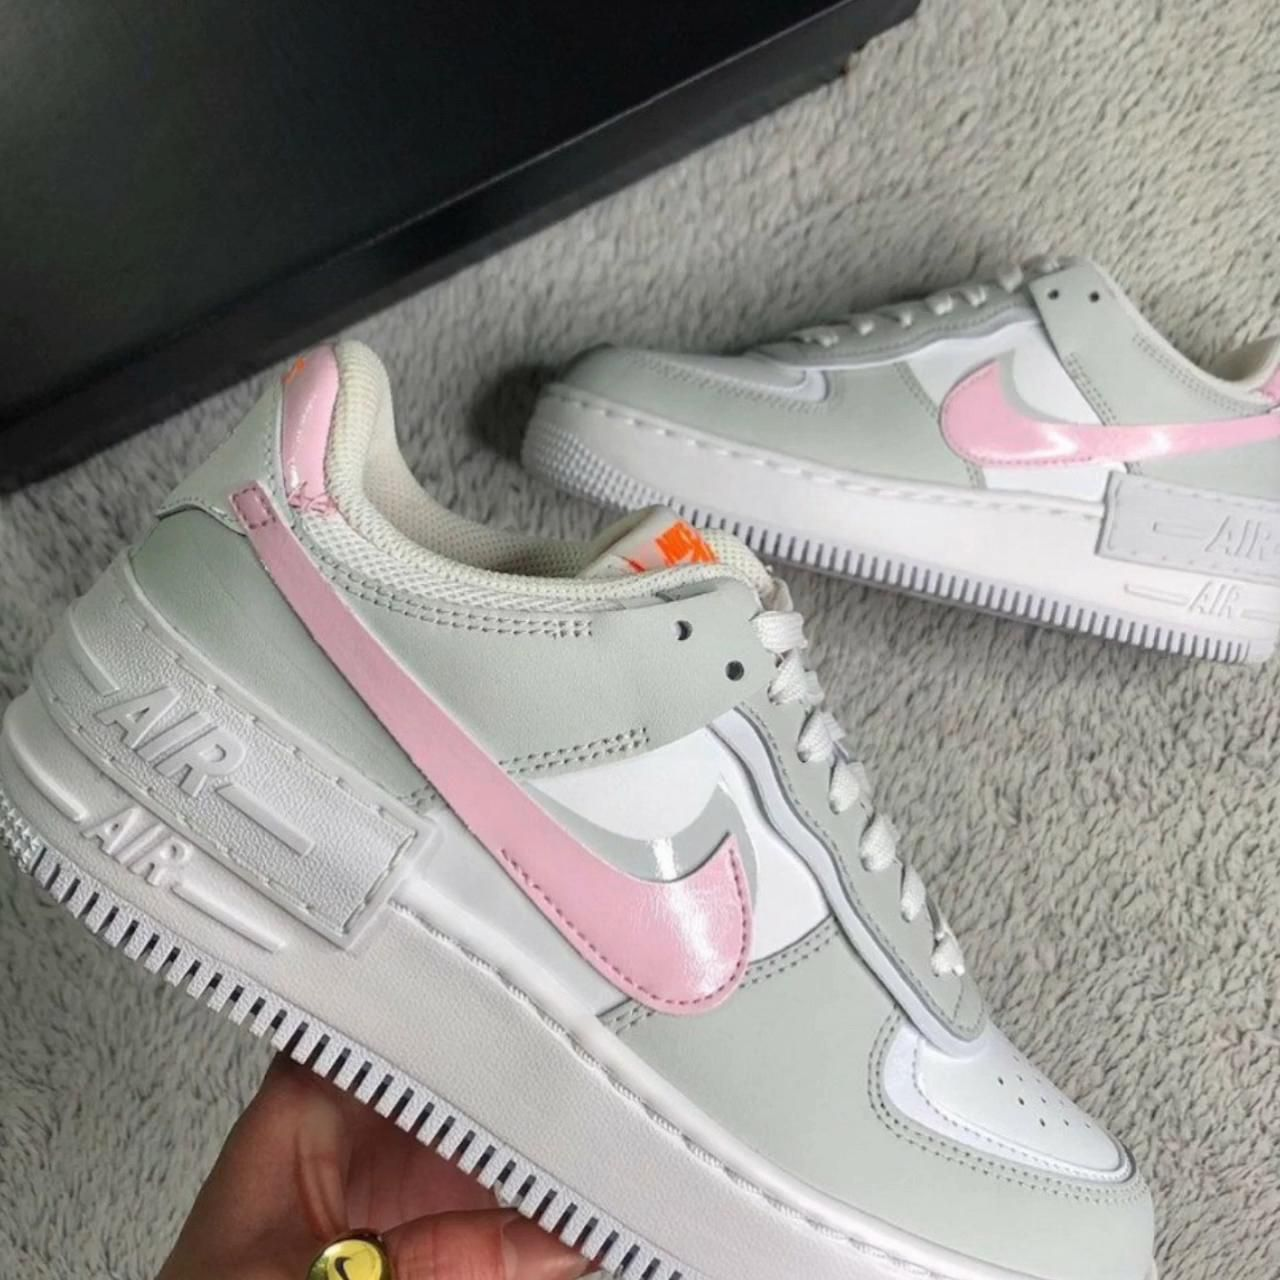 Nike Af1 Shadow White Total Orange Photon Dust Pink Foam Nike Shoes Air Force Womens Slippers Nikes Girl Nike air force 1 shadow photon dust tint gr. nike af1 shadow white total orange